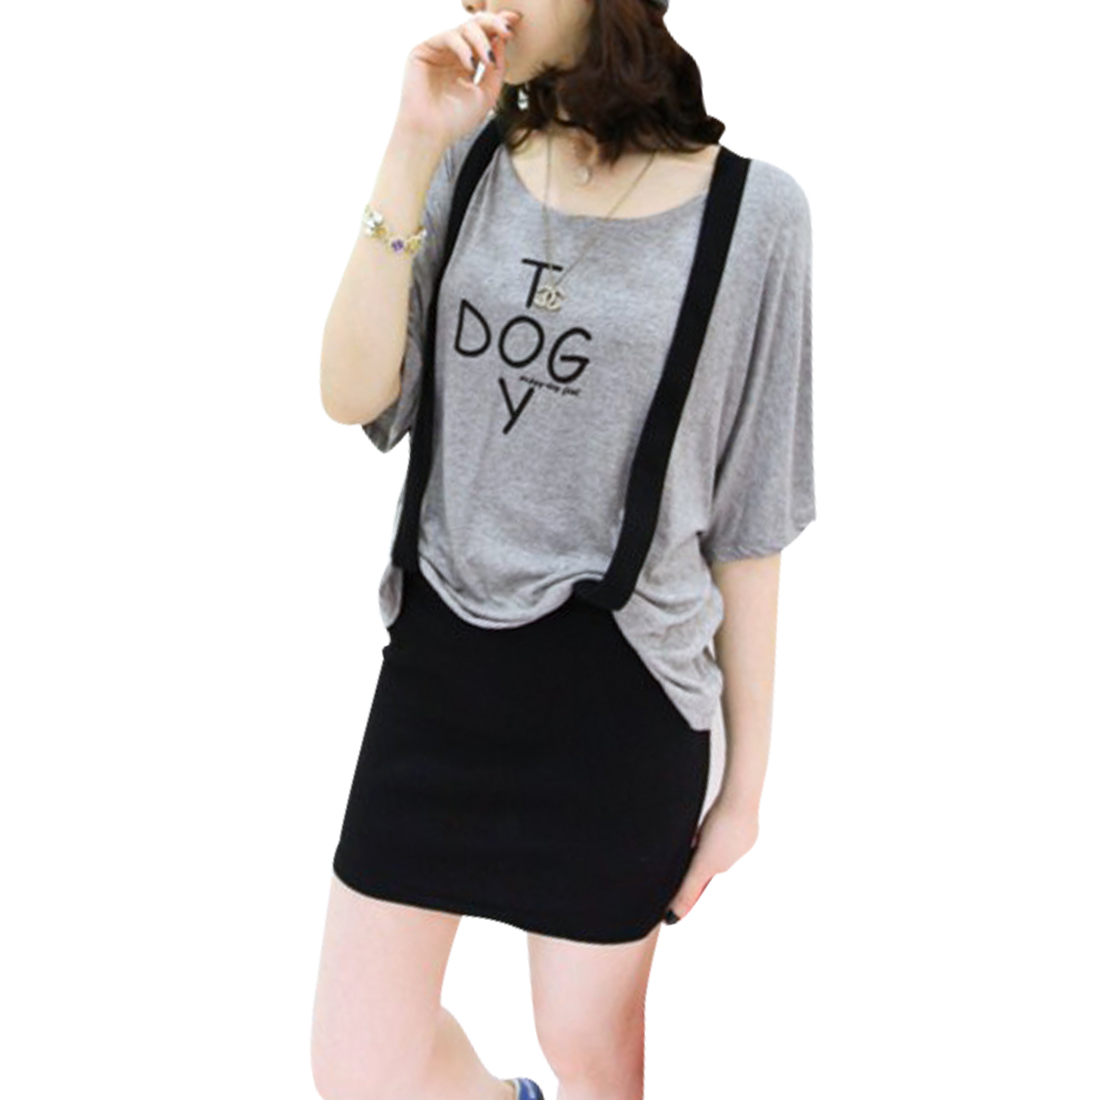 Lady Gray Batwing Sleeve Letter Prints Top w Black Suspender Skirt S